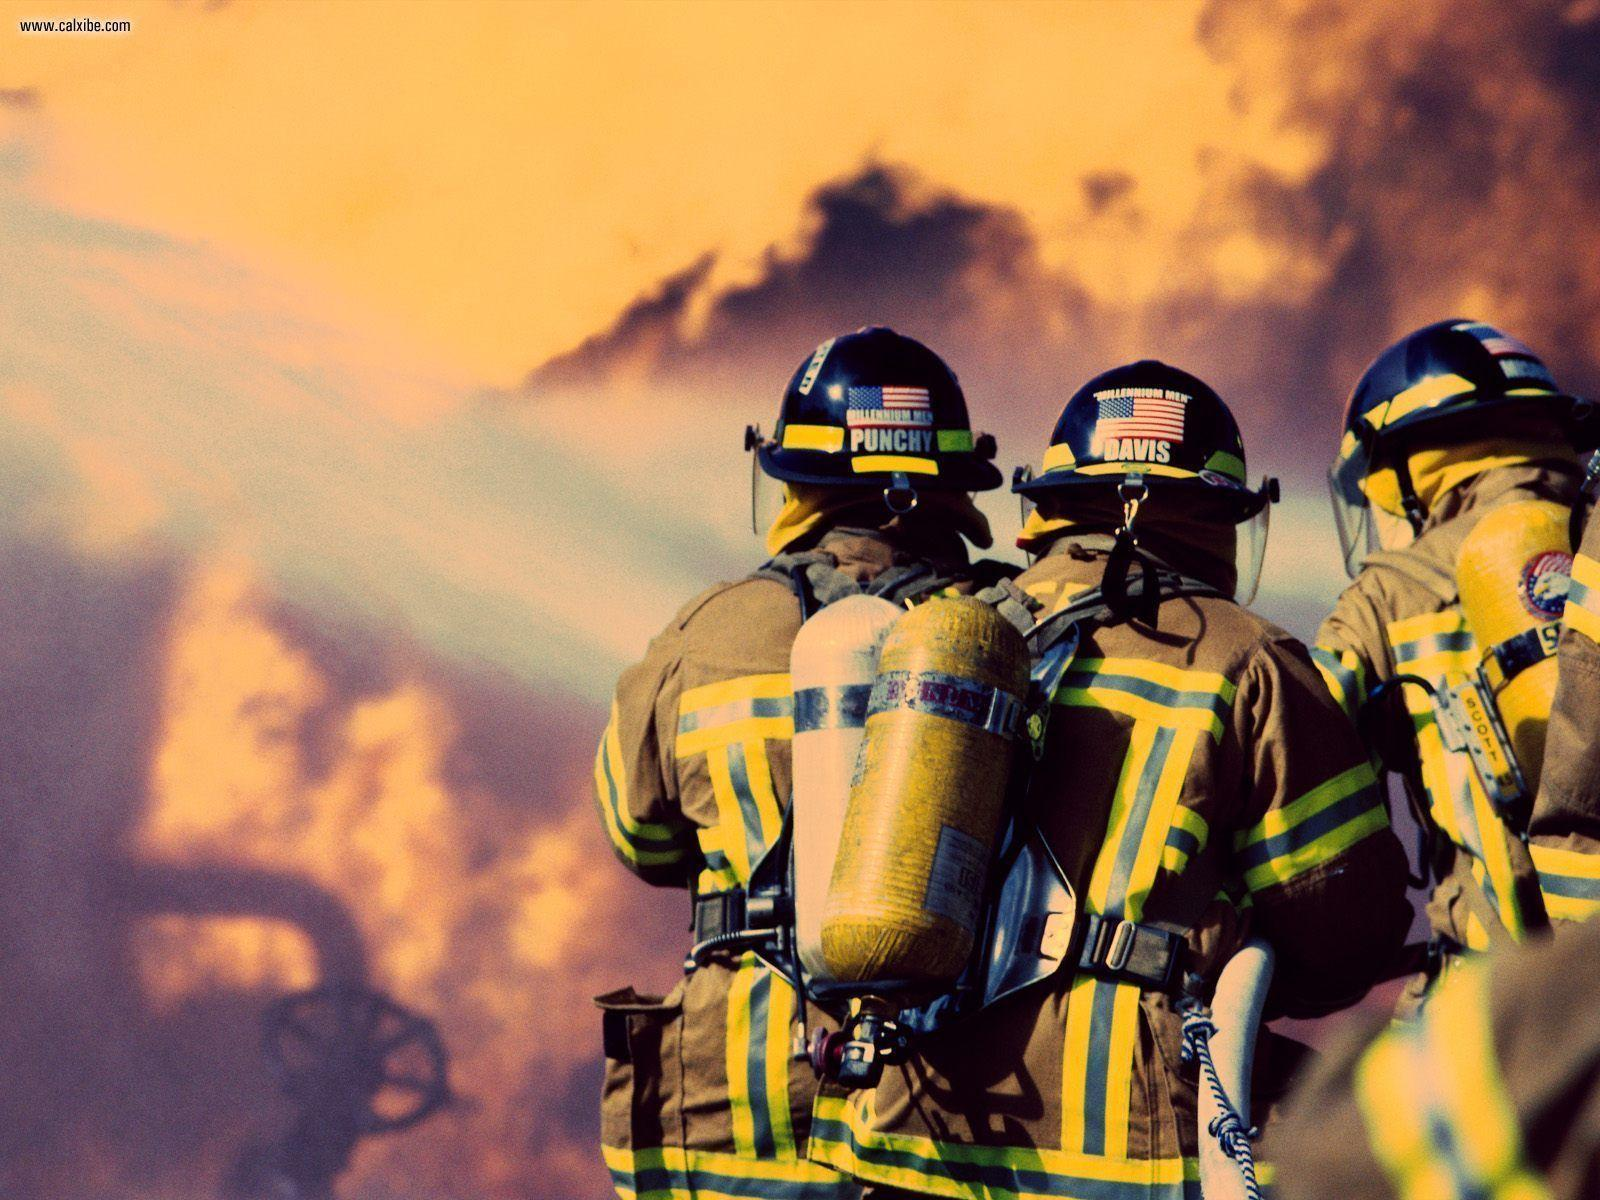 Firefighter Wallpapers Image HD Navy Seal